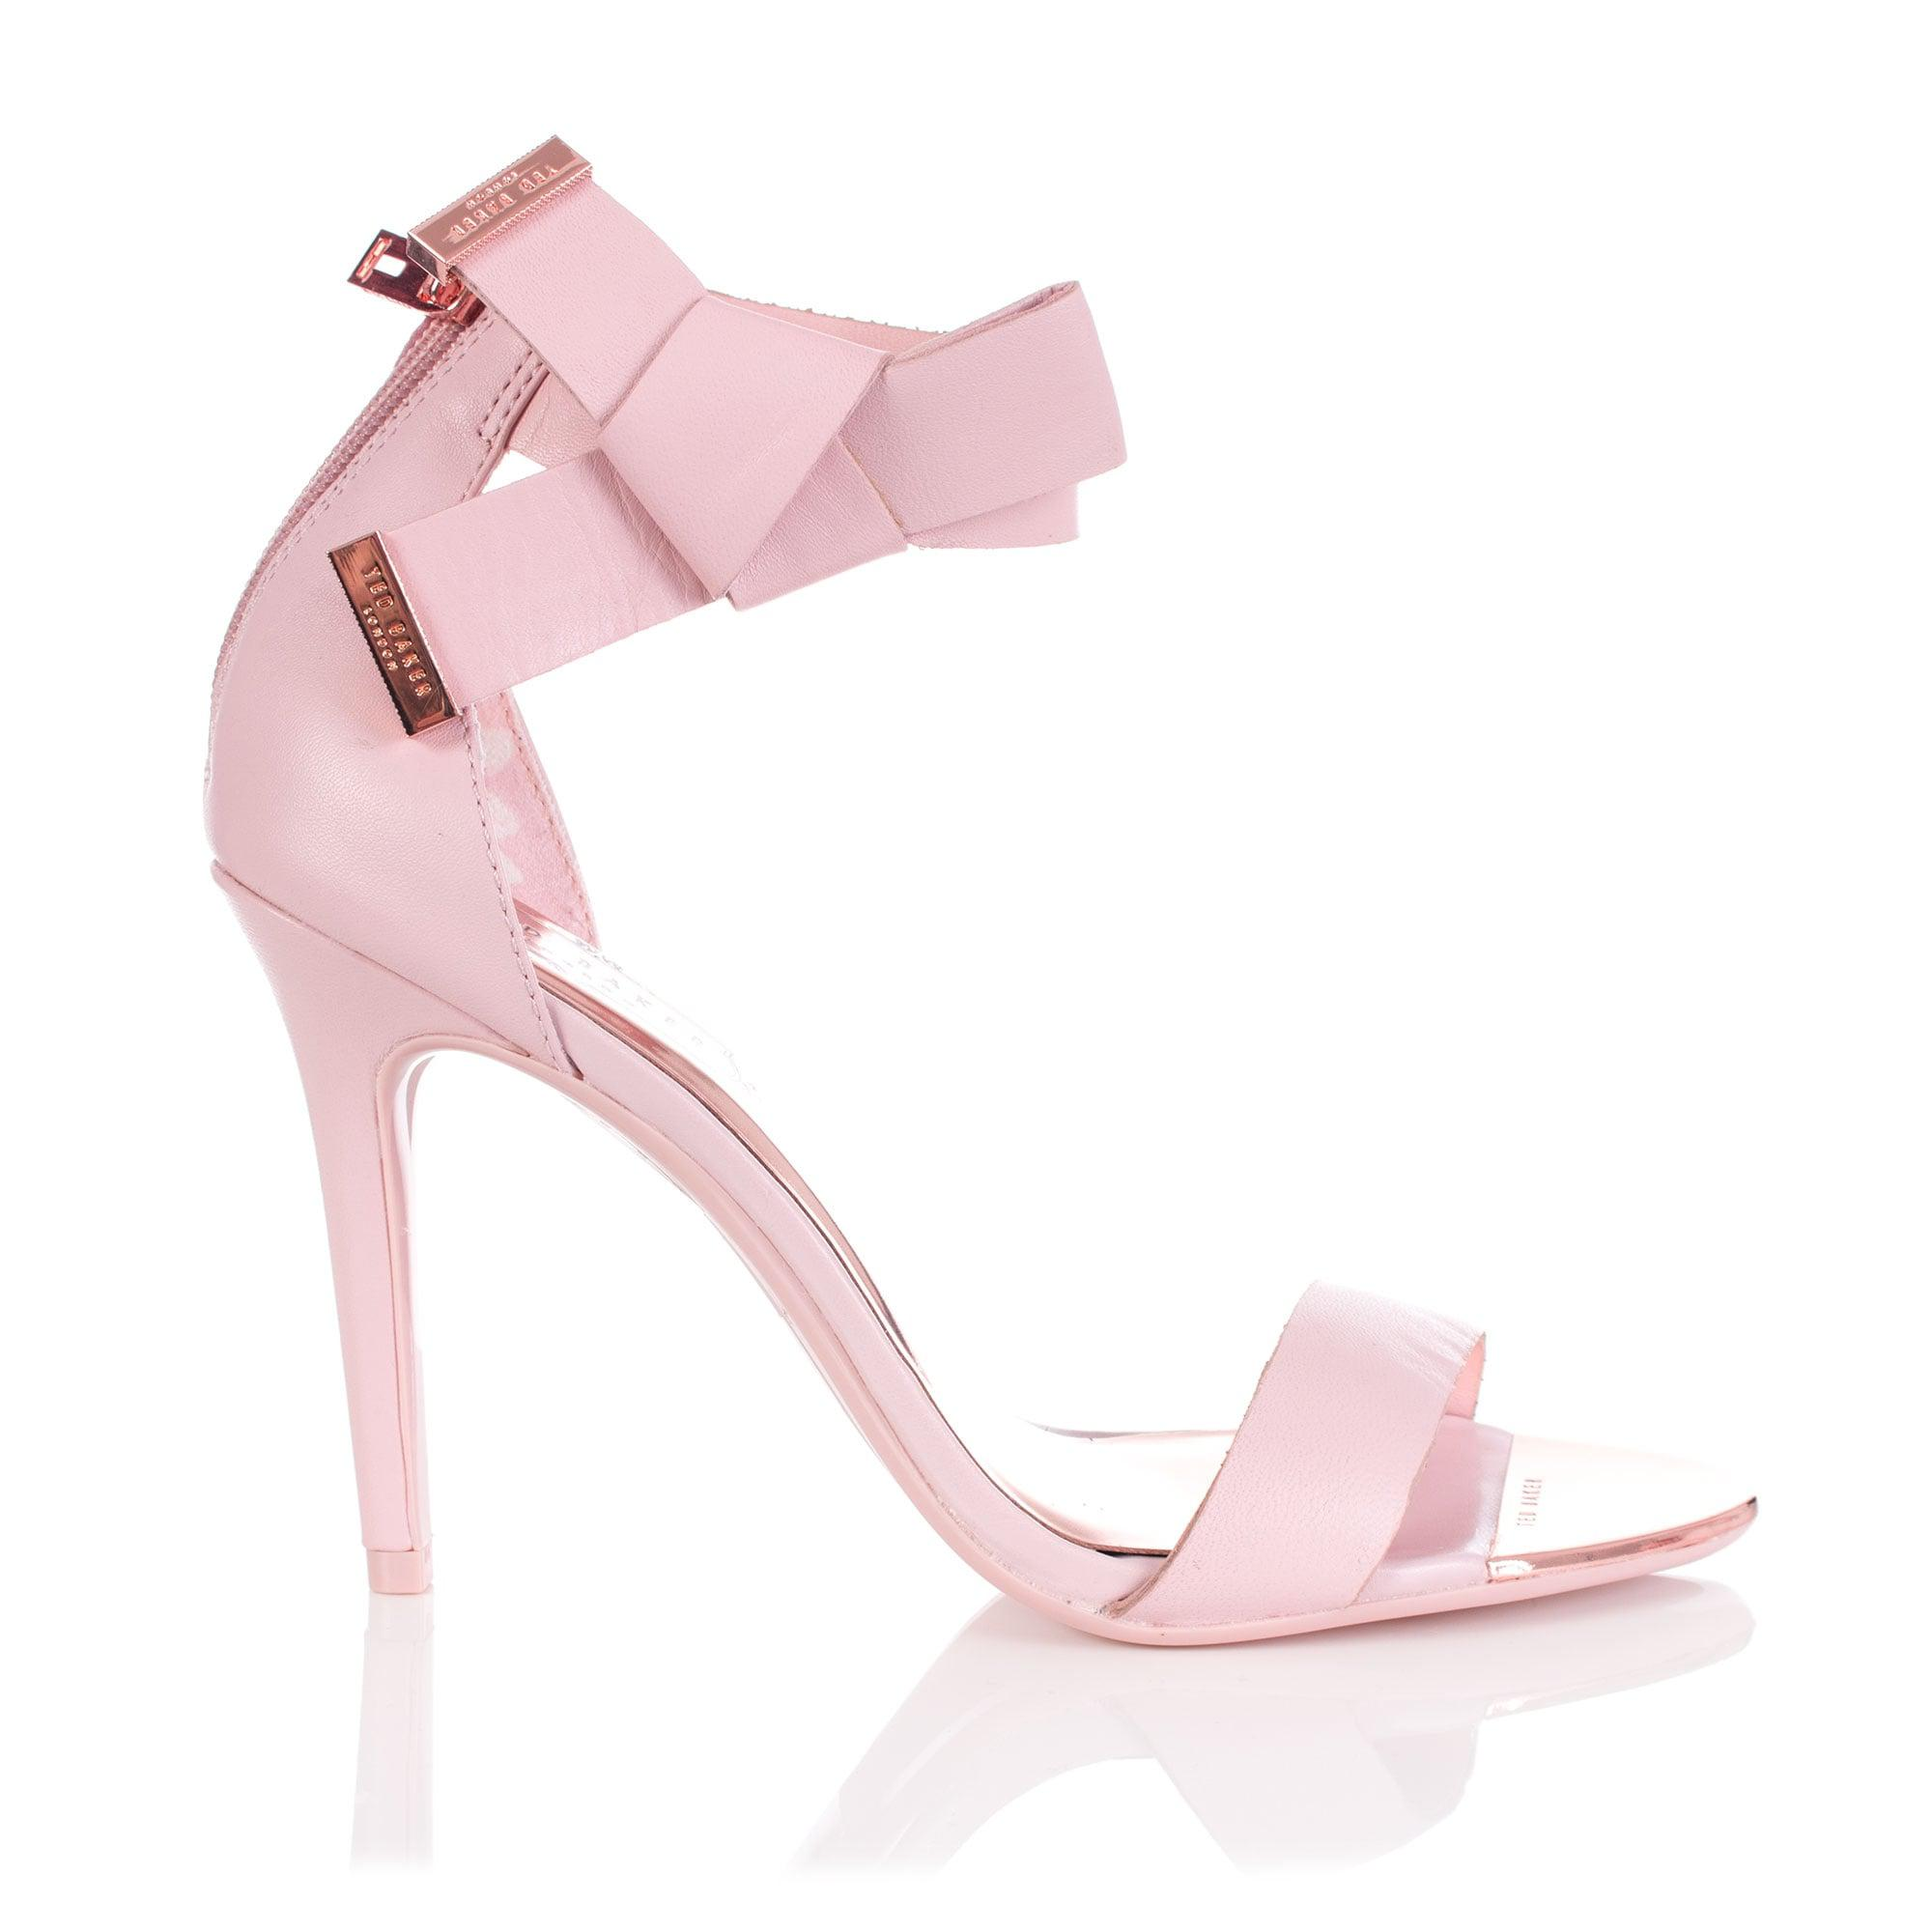 53cdac2ab52 Ted Baker Saphrun Knotted Bow Leather Sandal in Pink - Lyst